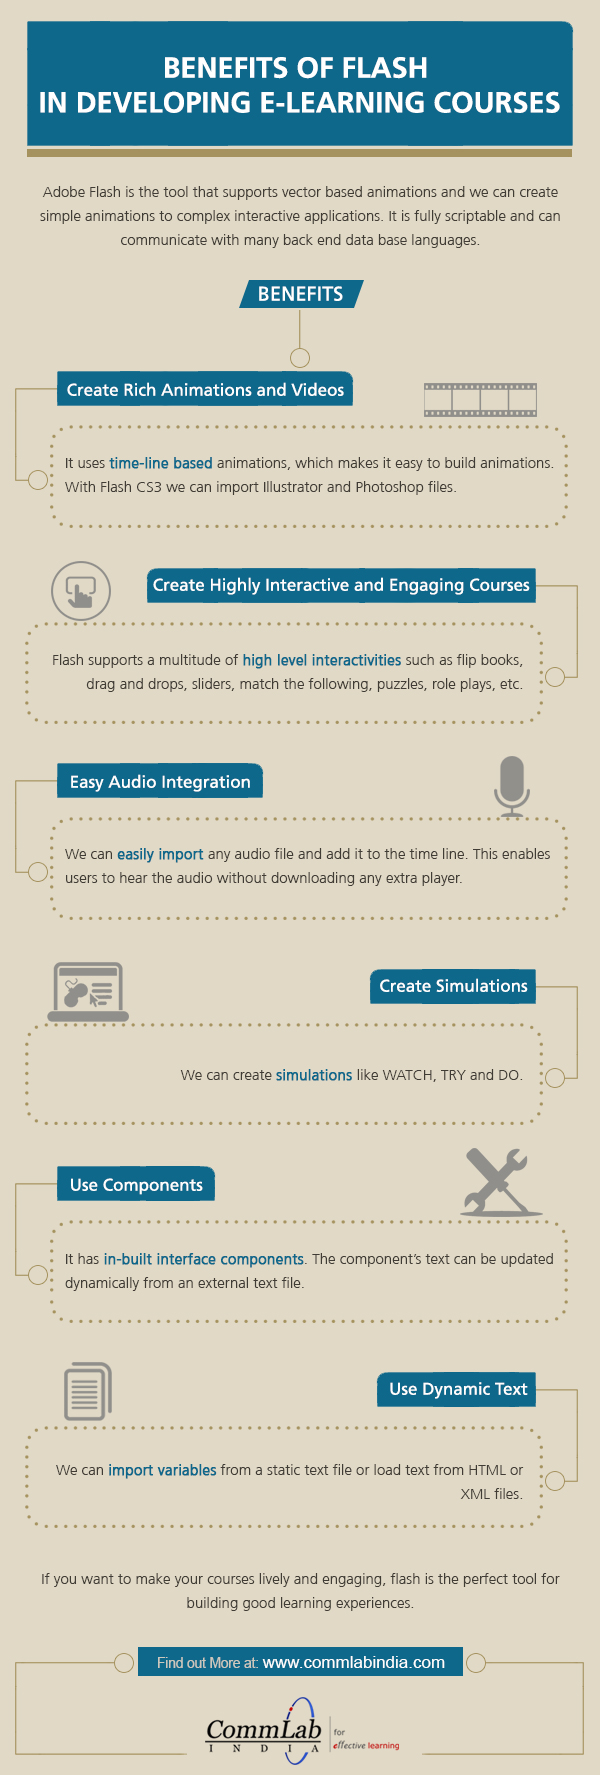 Benefits of Using Flash to Develop Online Courses – An Infographic